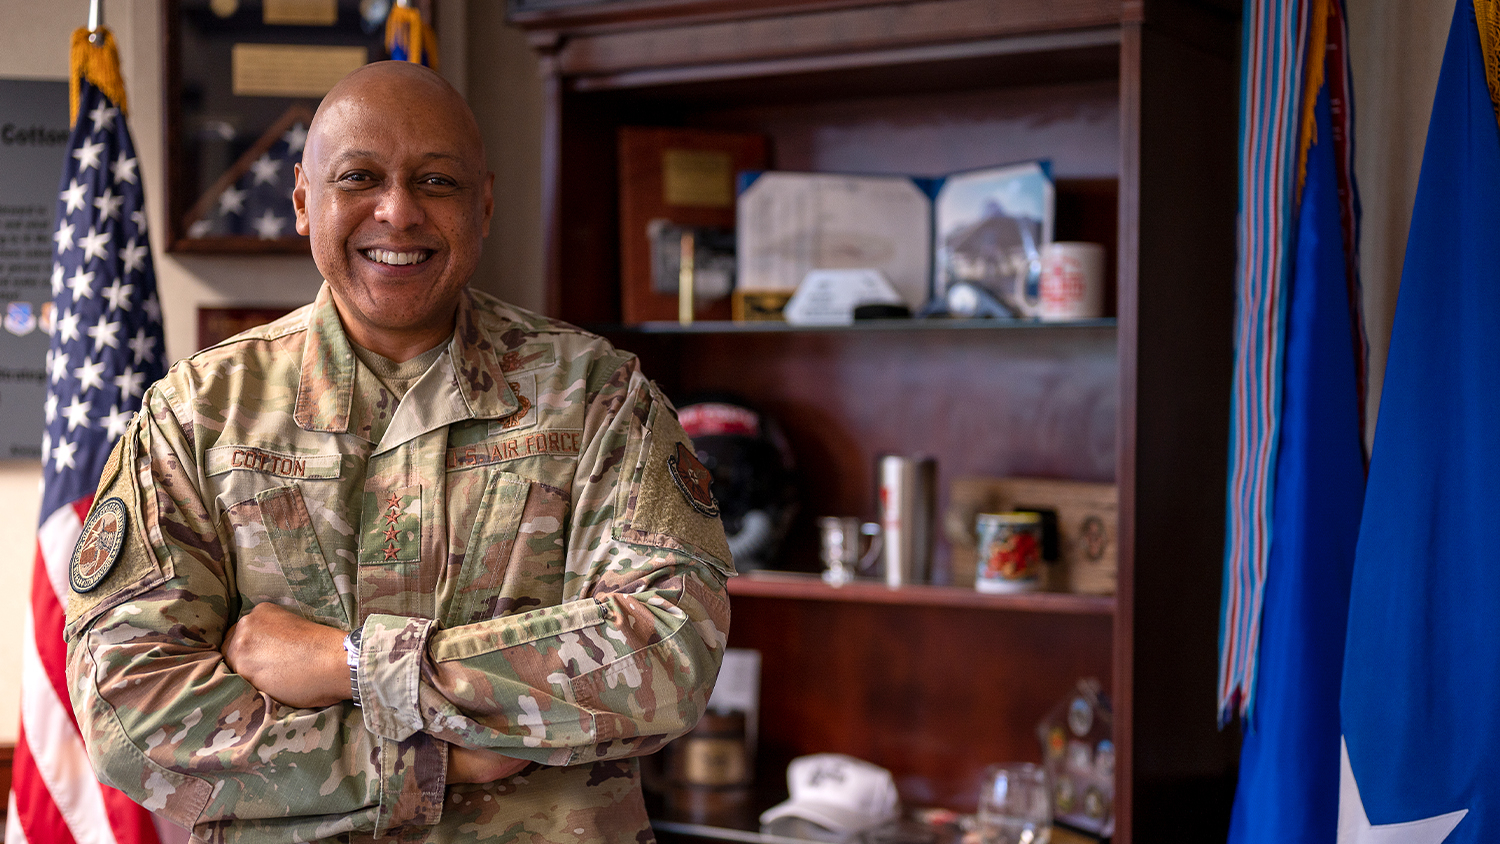 Gen Anthony Cotton in his military uniform and standing with his arms crossed in his office